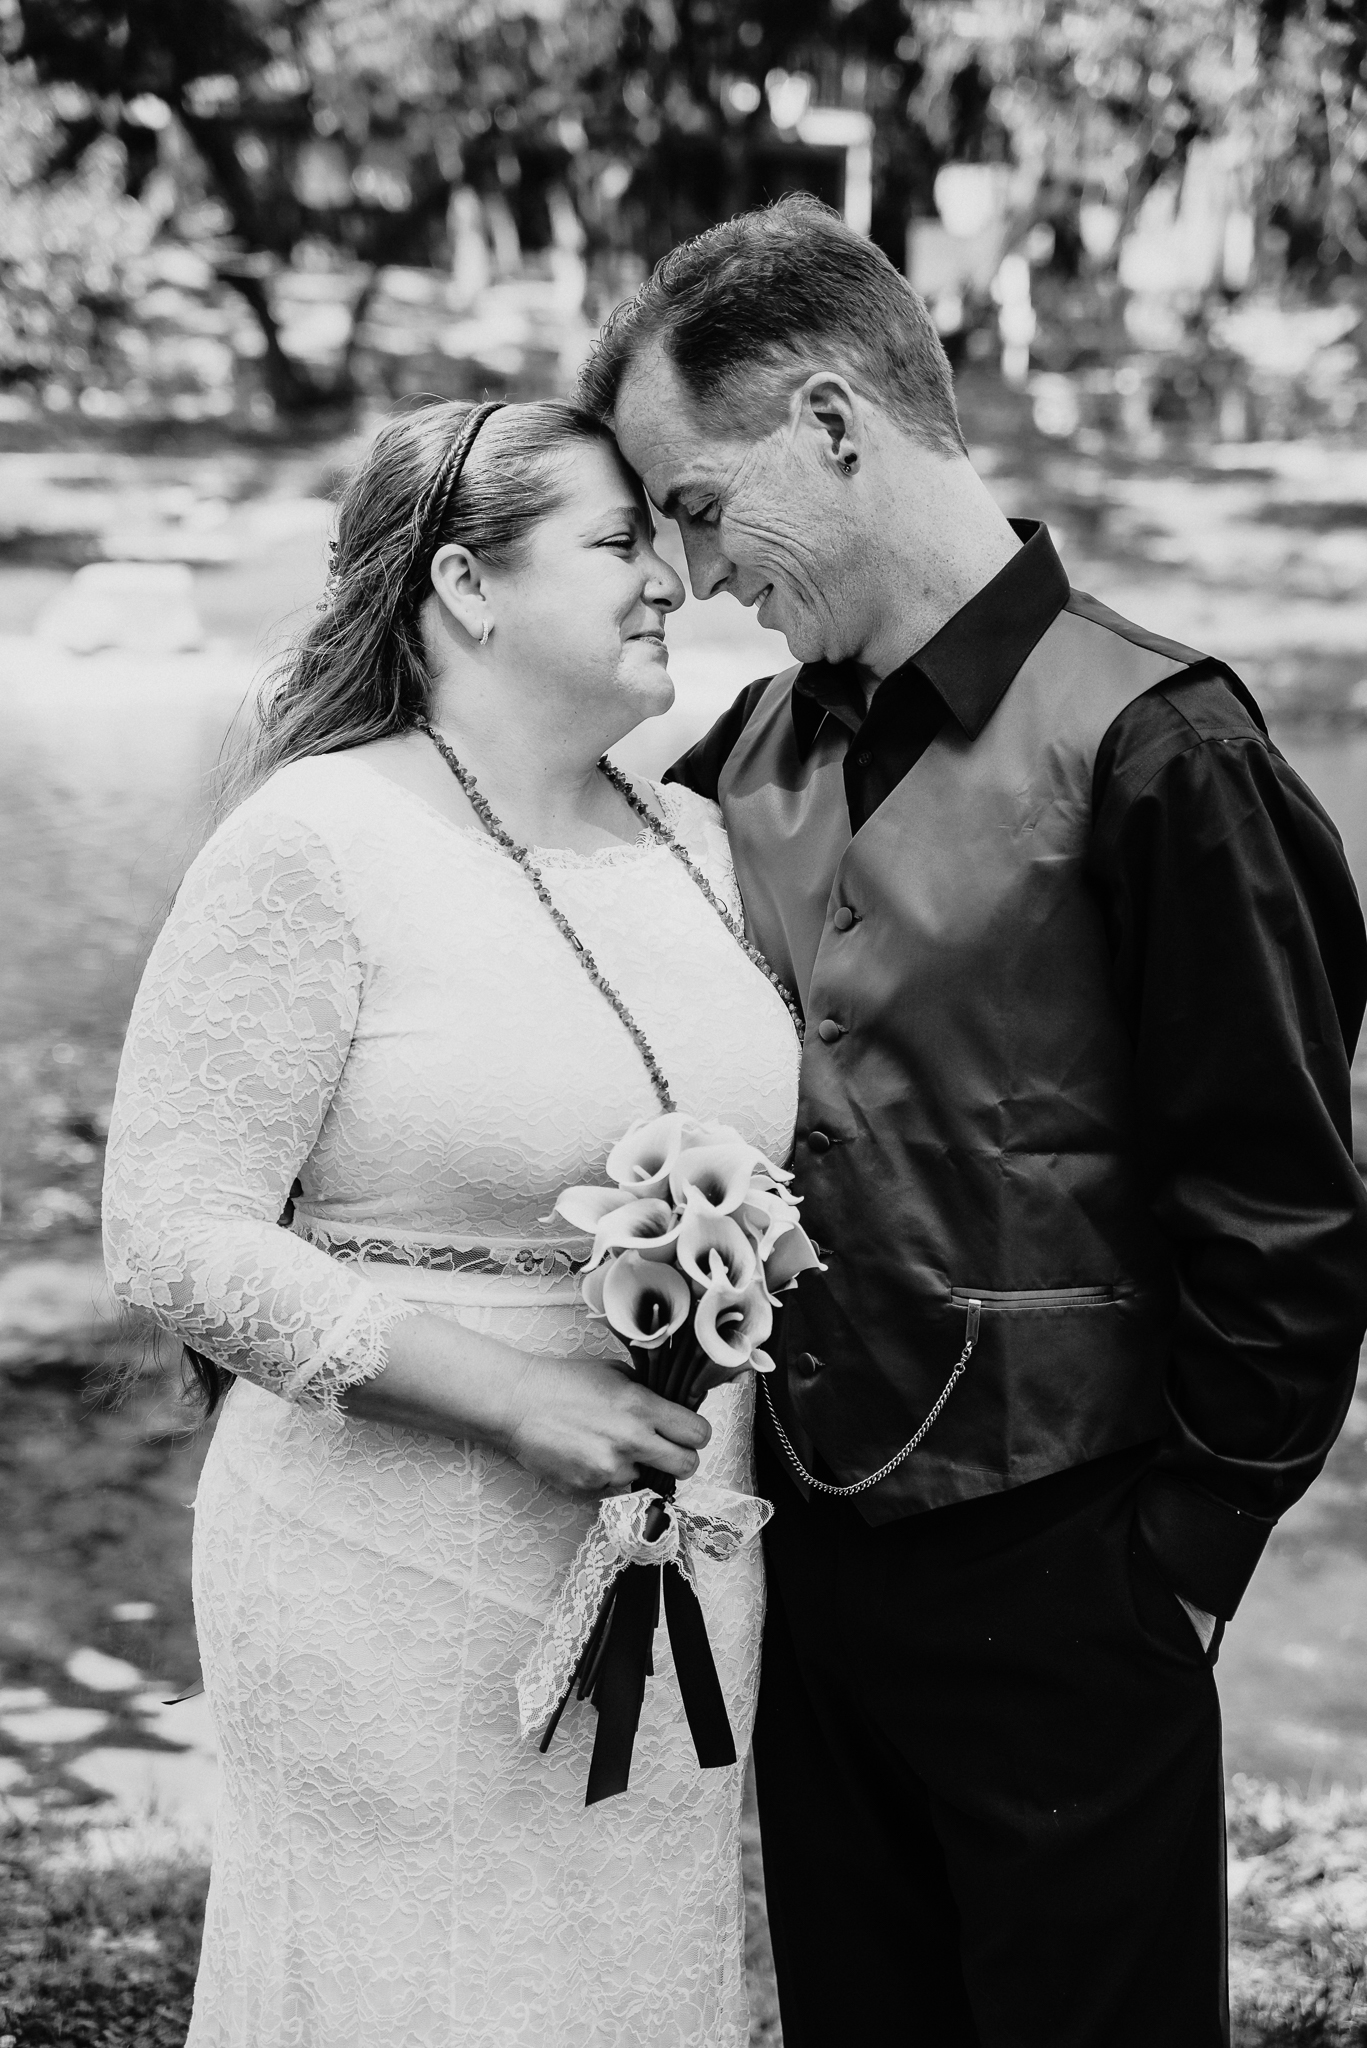 Wedding and Elopement Photographer_Round Rock Photographer_Emily Ingalls Photography_Austin Wedding and Elopement Photographer_Pflugerville Wedding Photographer_Georgetown Wedding Photographer.jpg